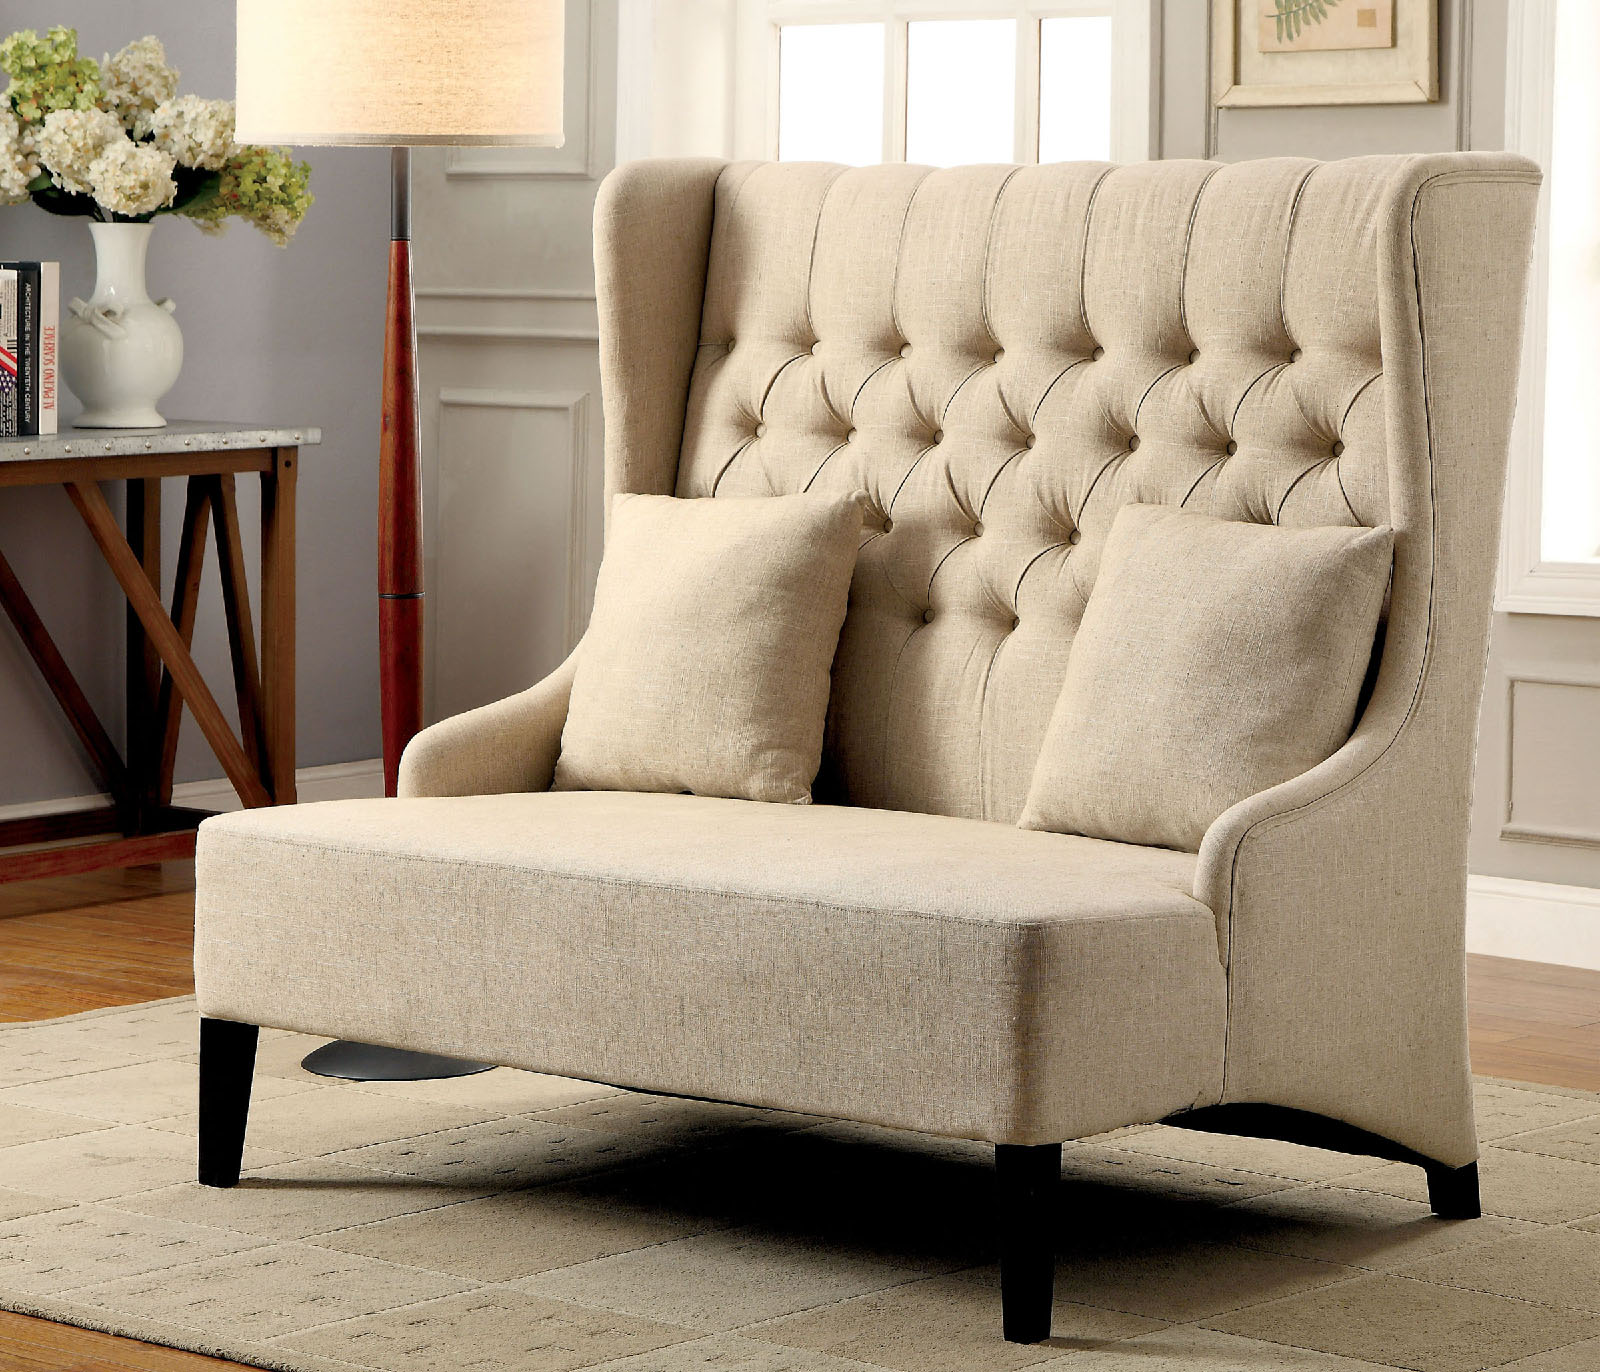 High Back Tufted Couch